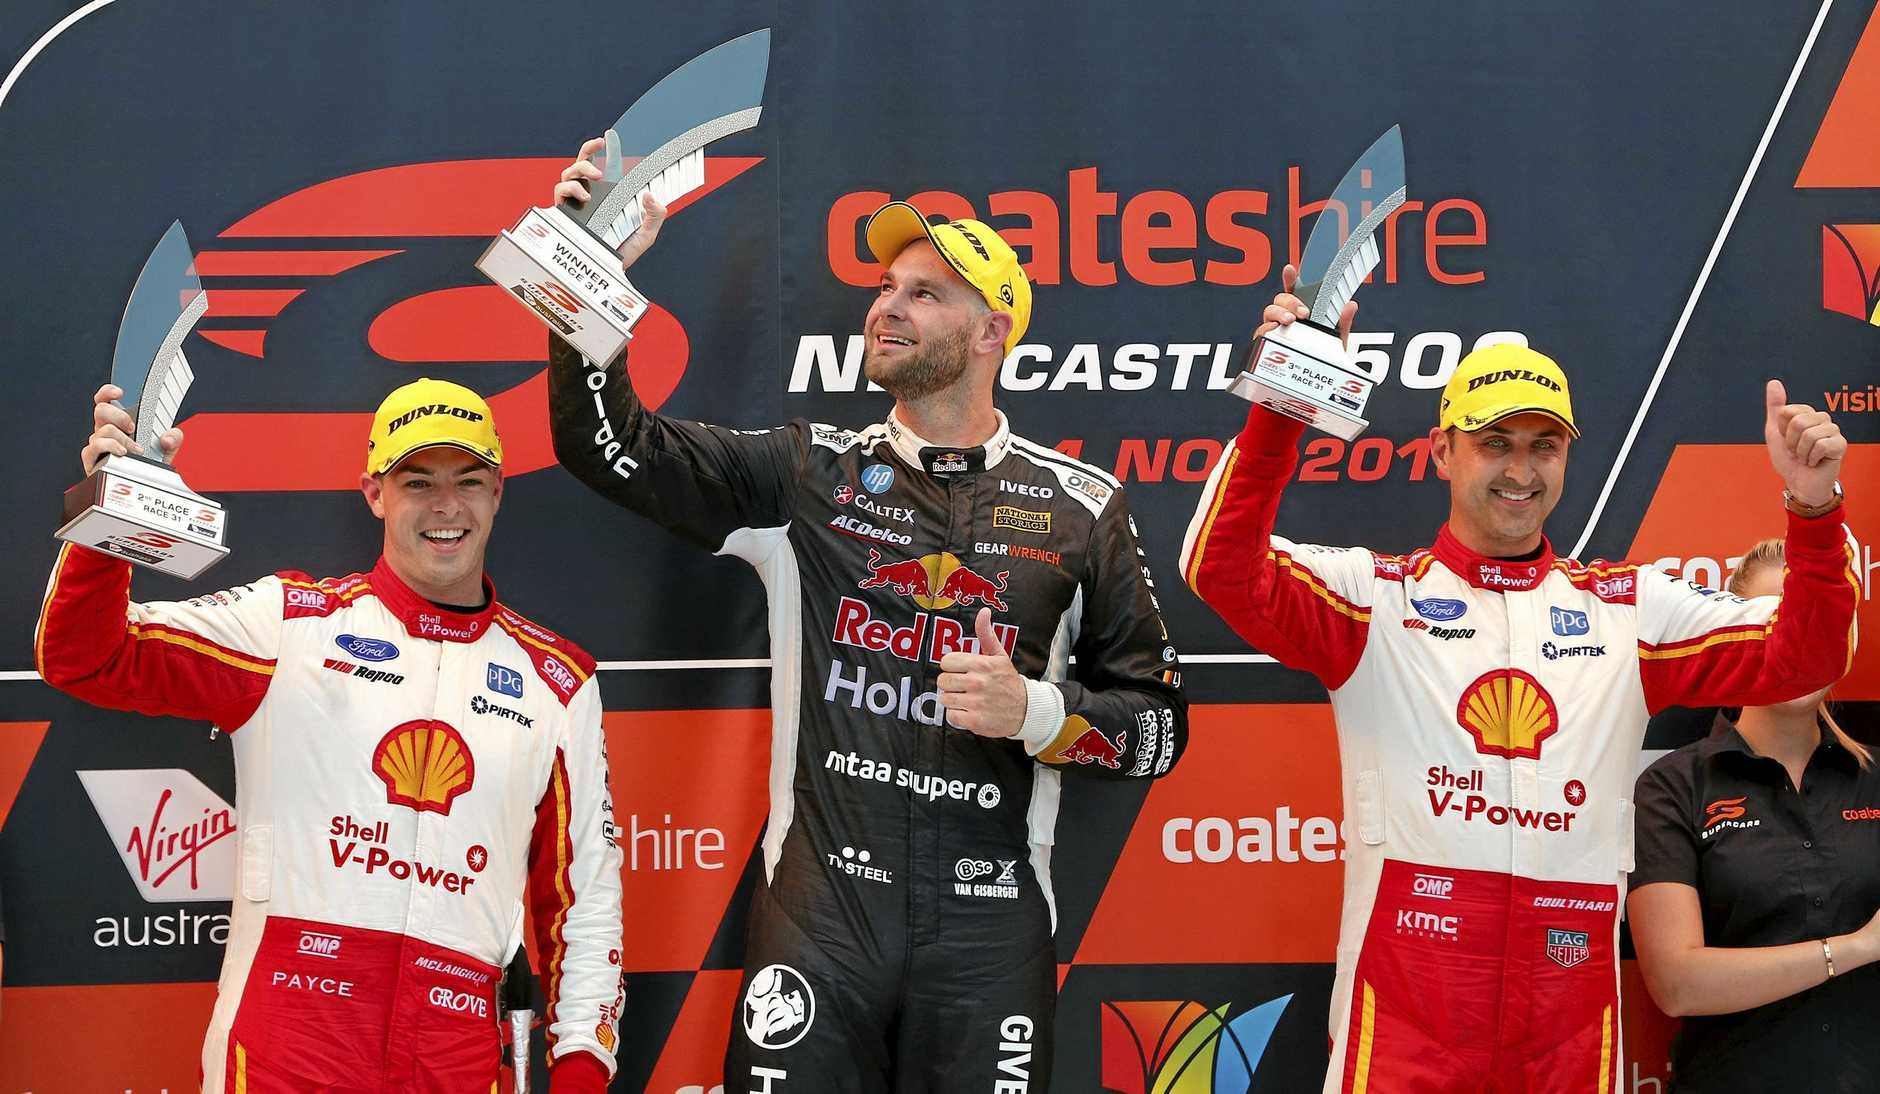 Runner-up Scott Mclaughlin, winner Shane van Gisbergen and third-placed Fabian Coulthard enjoy the moment on the podium at the Newcastle 500 on Saturday. Picture: Darren Pateman/AAP